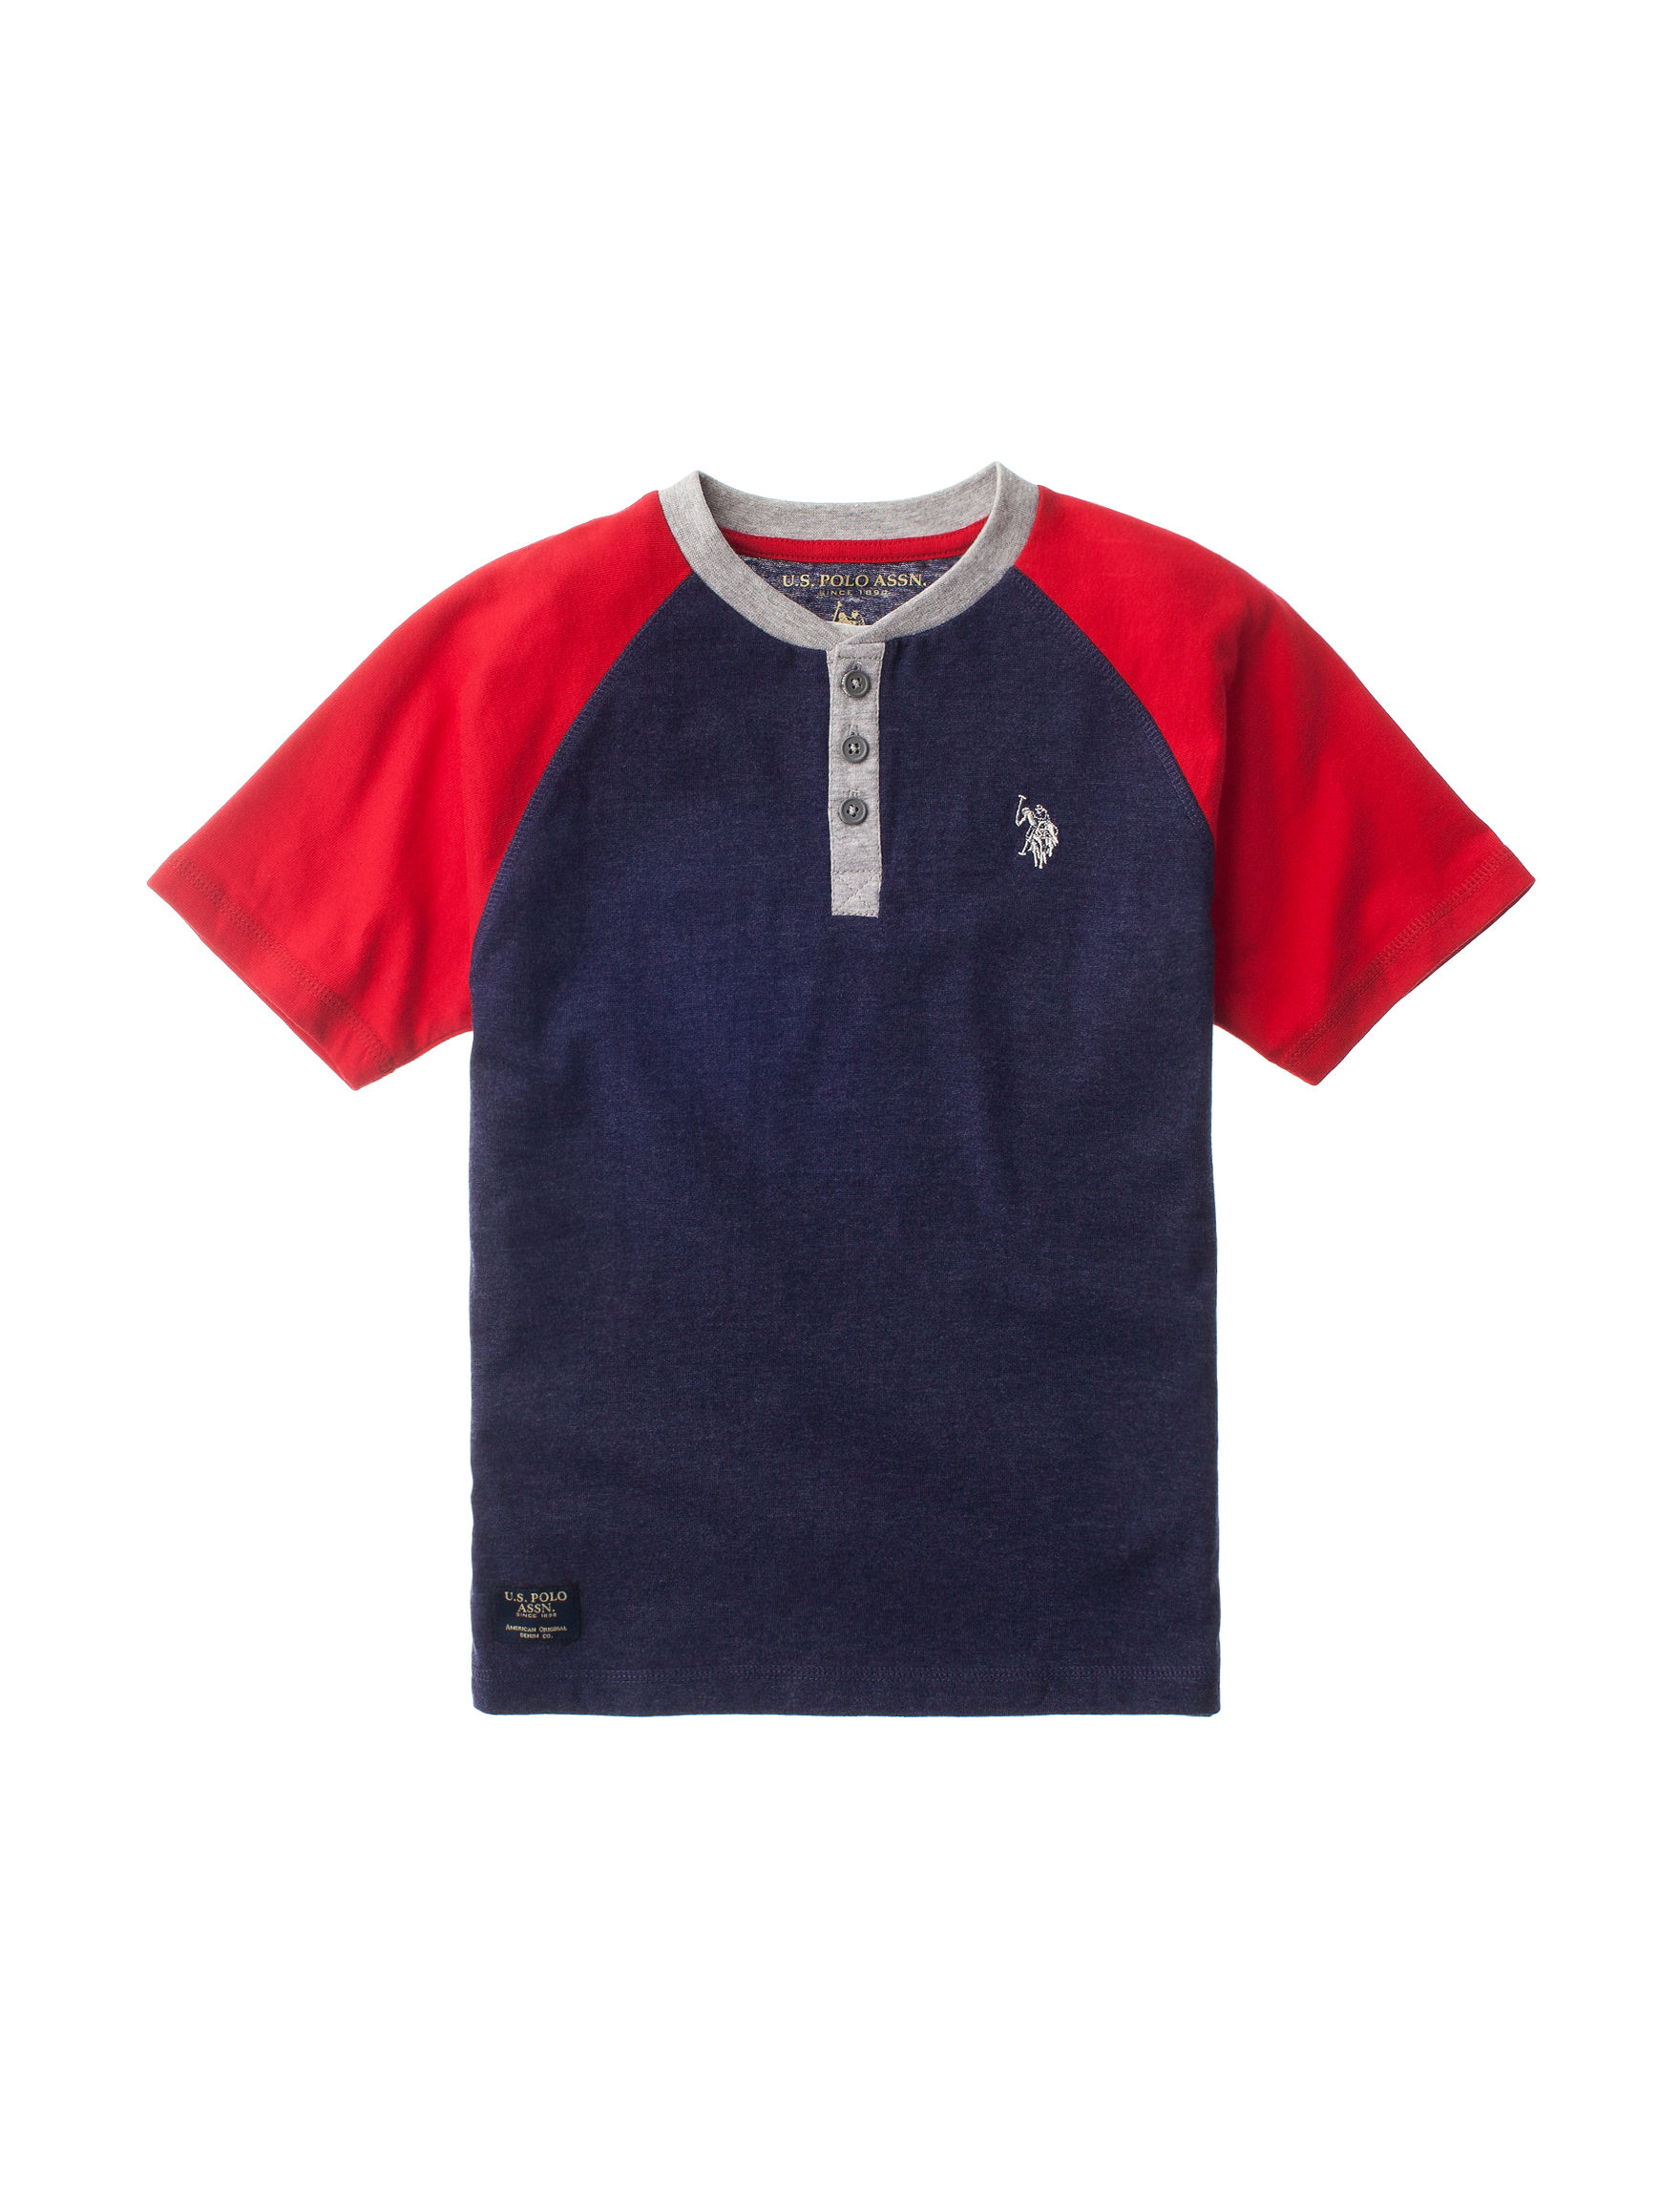 U.S. Polo Assn. Blue